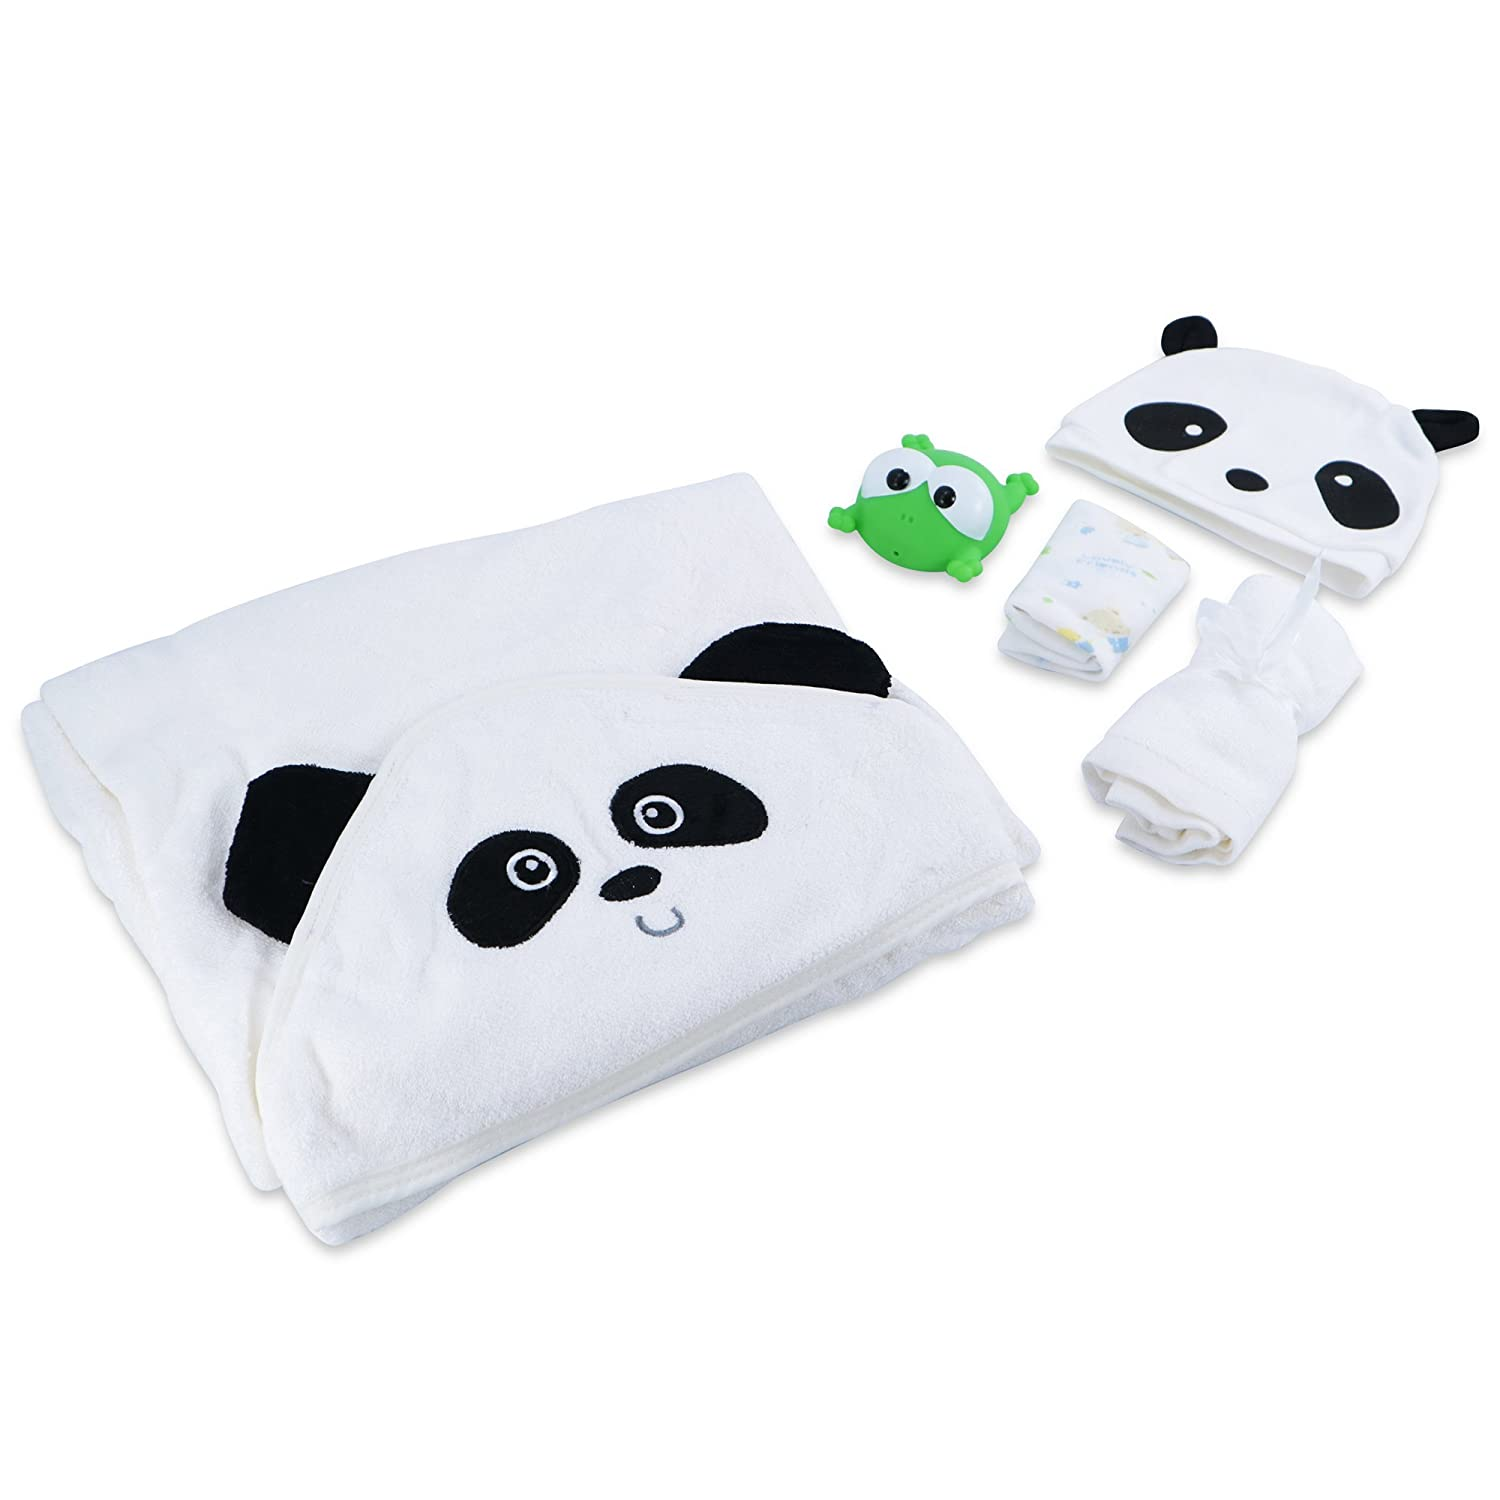 Luxury Baby Hooded Towel and Washcloth Set (Panda) | Super Soft & Absorbent Organic Bamboo for Newborn, Infant, Toddler & Kids | Great Shower Gift | Great for Baby with Sensitive Skin Gambi-Baby